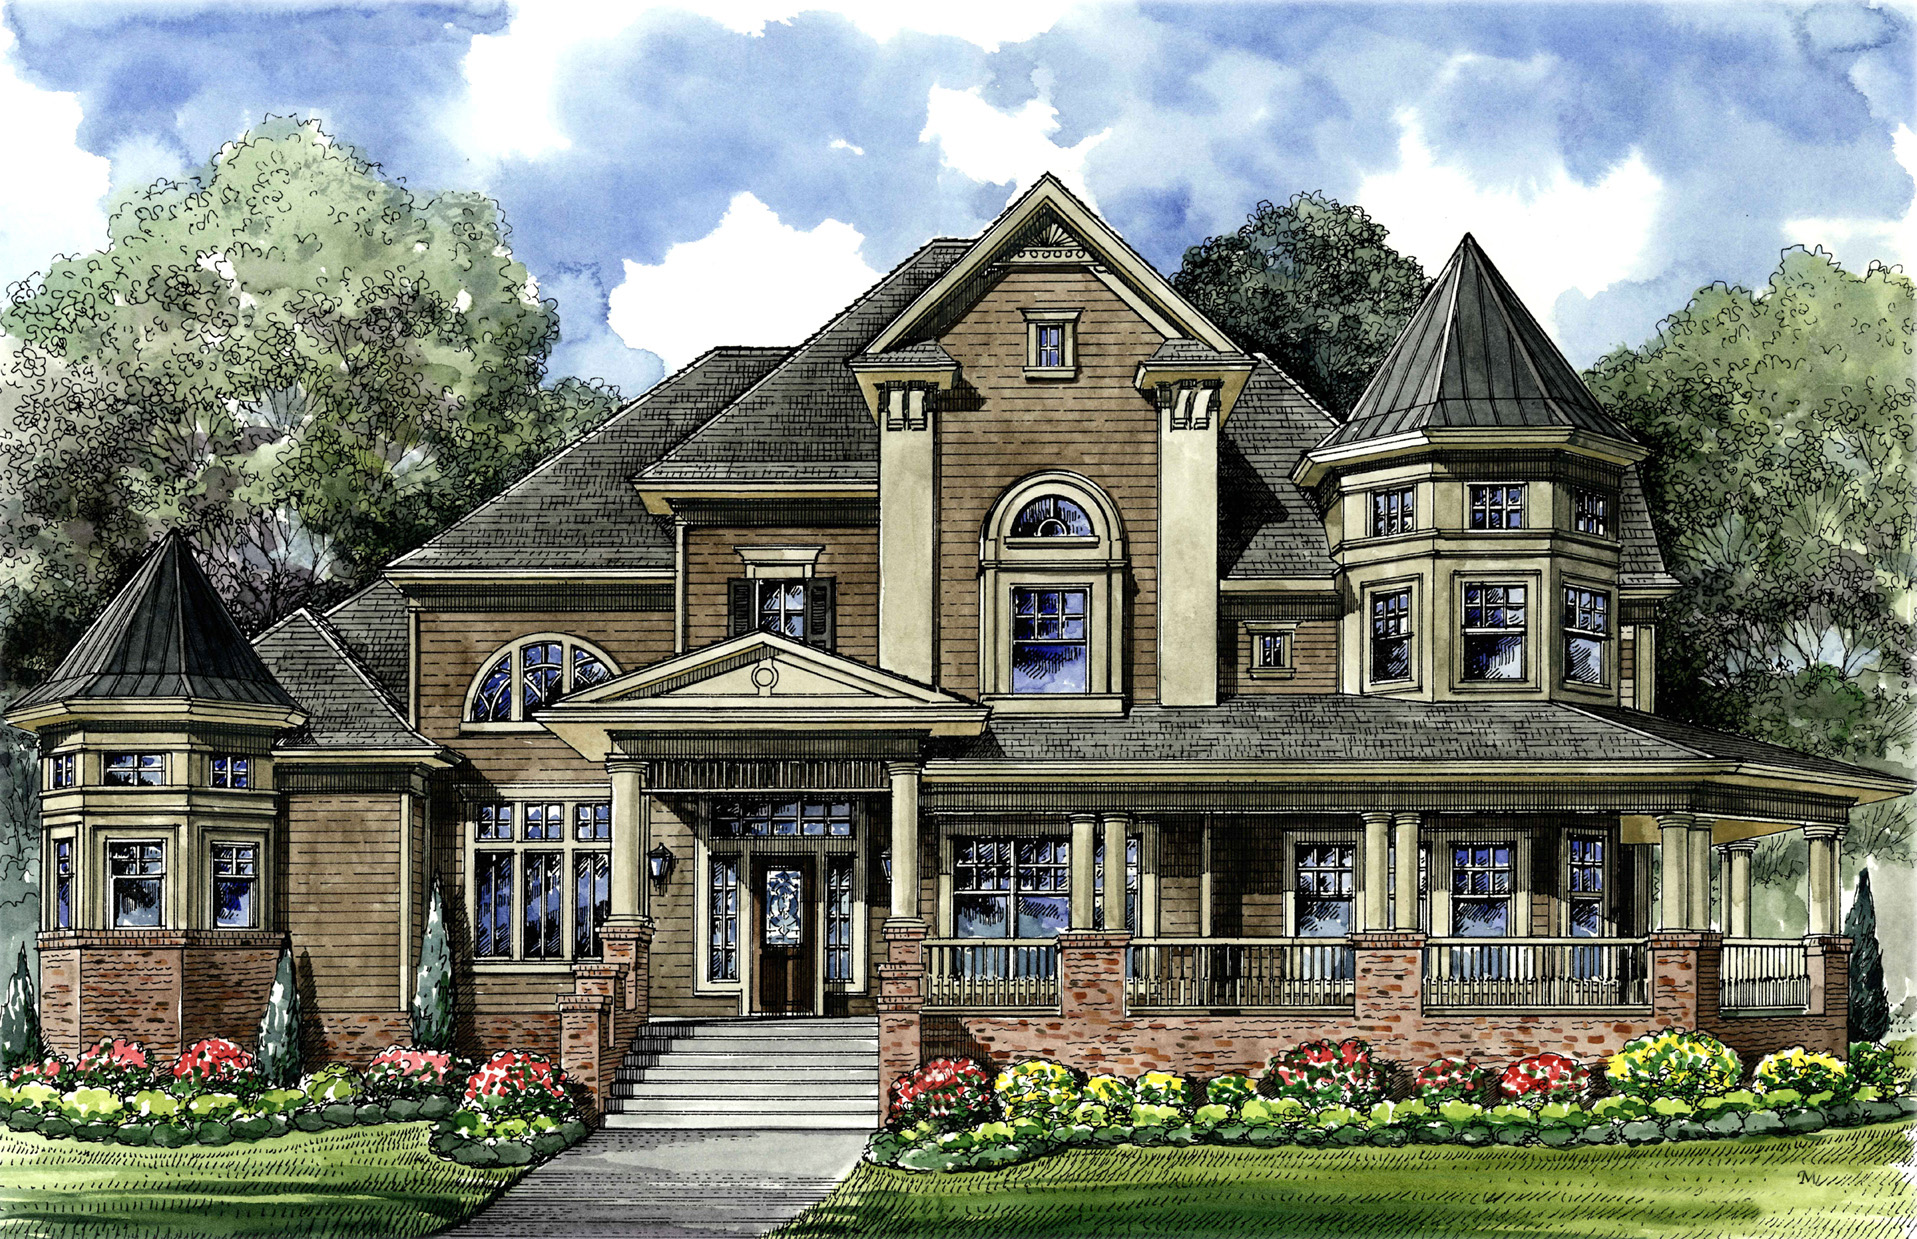 Victorian with 3-Car Detached Garage - 67088GL   Architectural ... on home plans with breakfast nook, home plans with master suite, home plans with den, home plans with water view, home plans with open floor plan, home plans with covered lanai, home plans with barn, home plans with tennis court, home plans with sauna, home plans with two story, home plans with study, home plans with detached, home plans with single story, home plans with carport, home plans with exercise room, home plans with covered patio, home plans with wine cellar, home plans with screened in porch, home plans with library, home plans with 2 kitchens,